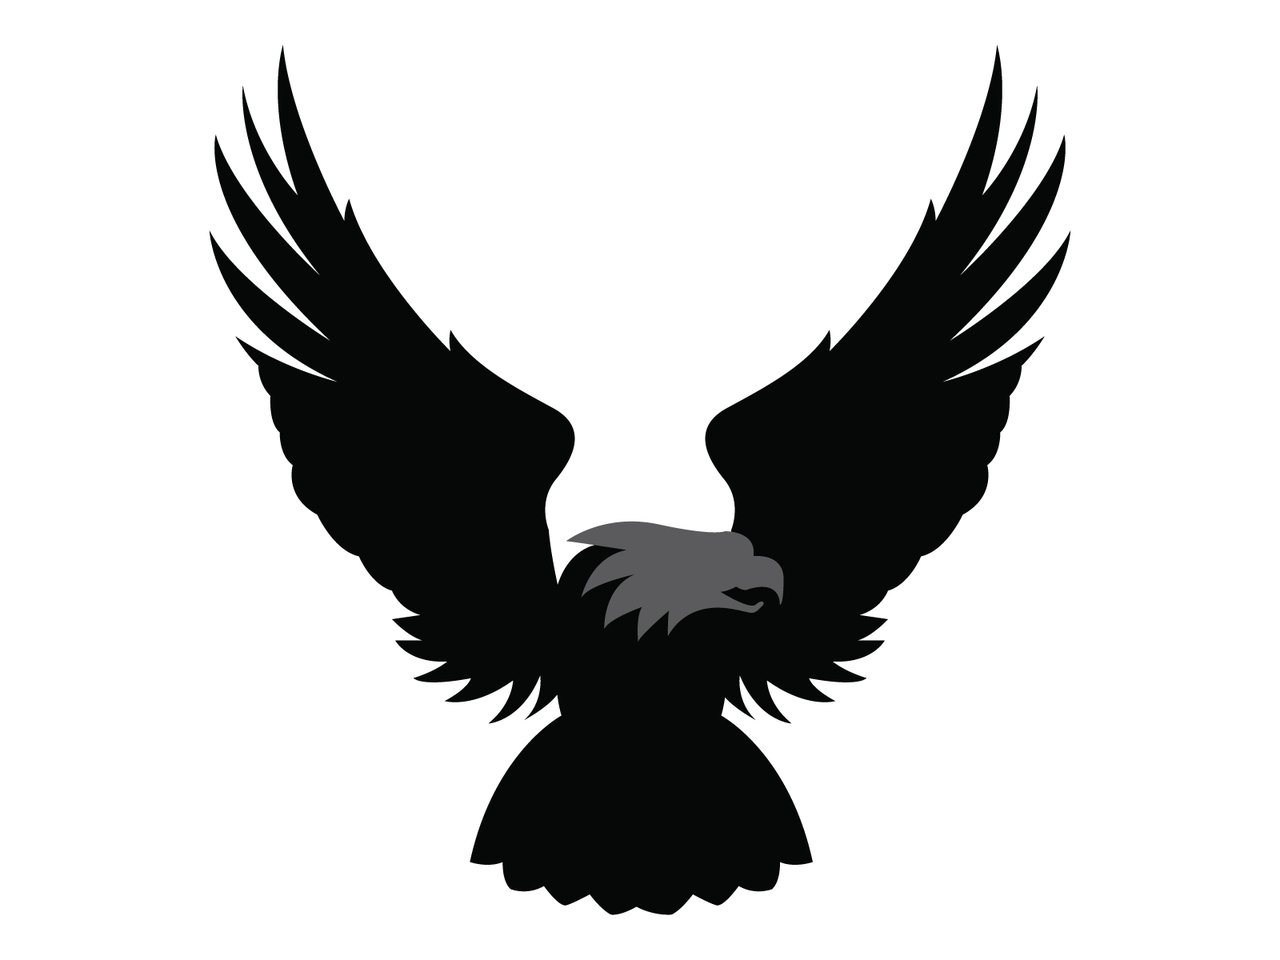 Free Eagle Vector Png, Download Free Clip Art, Free Clip Art on.